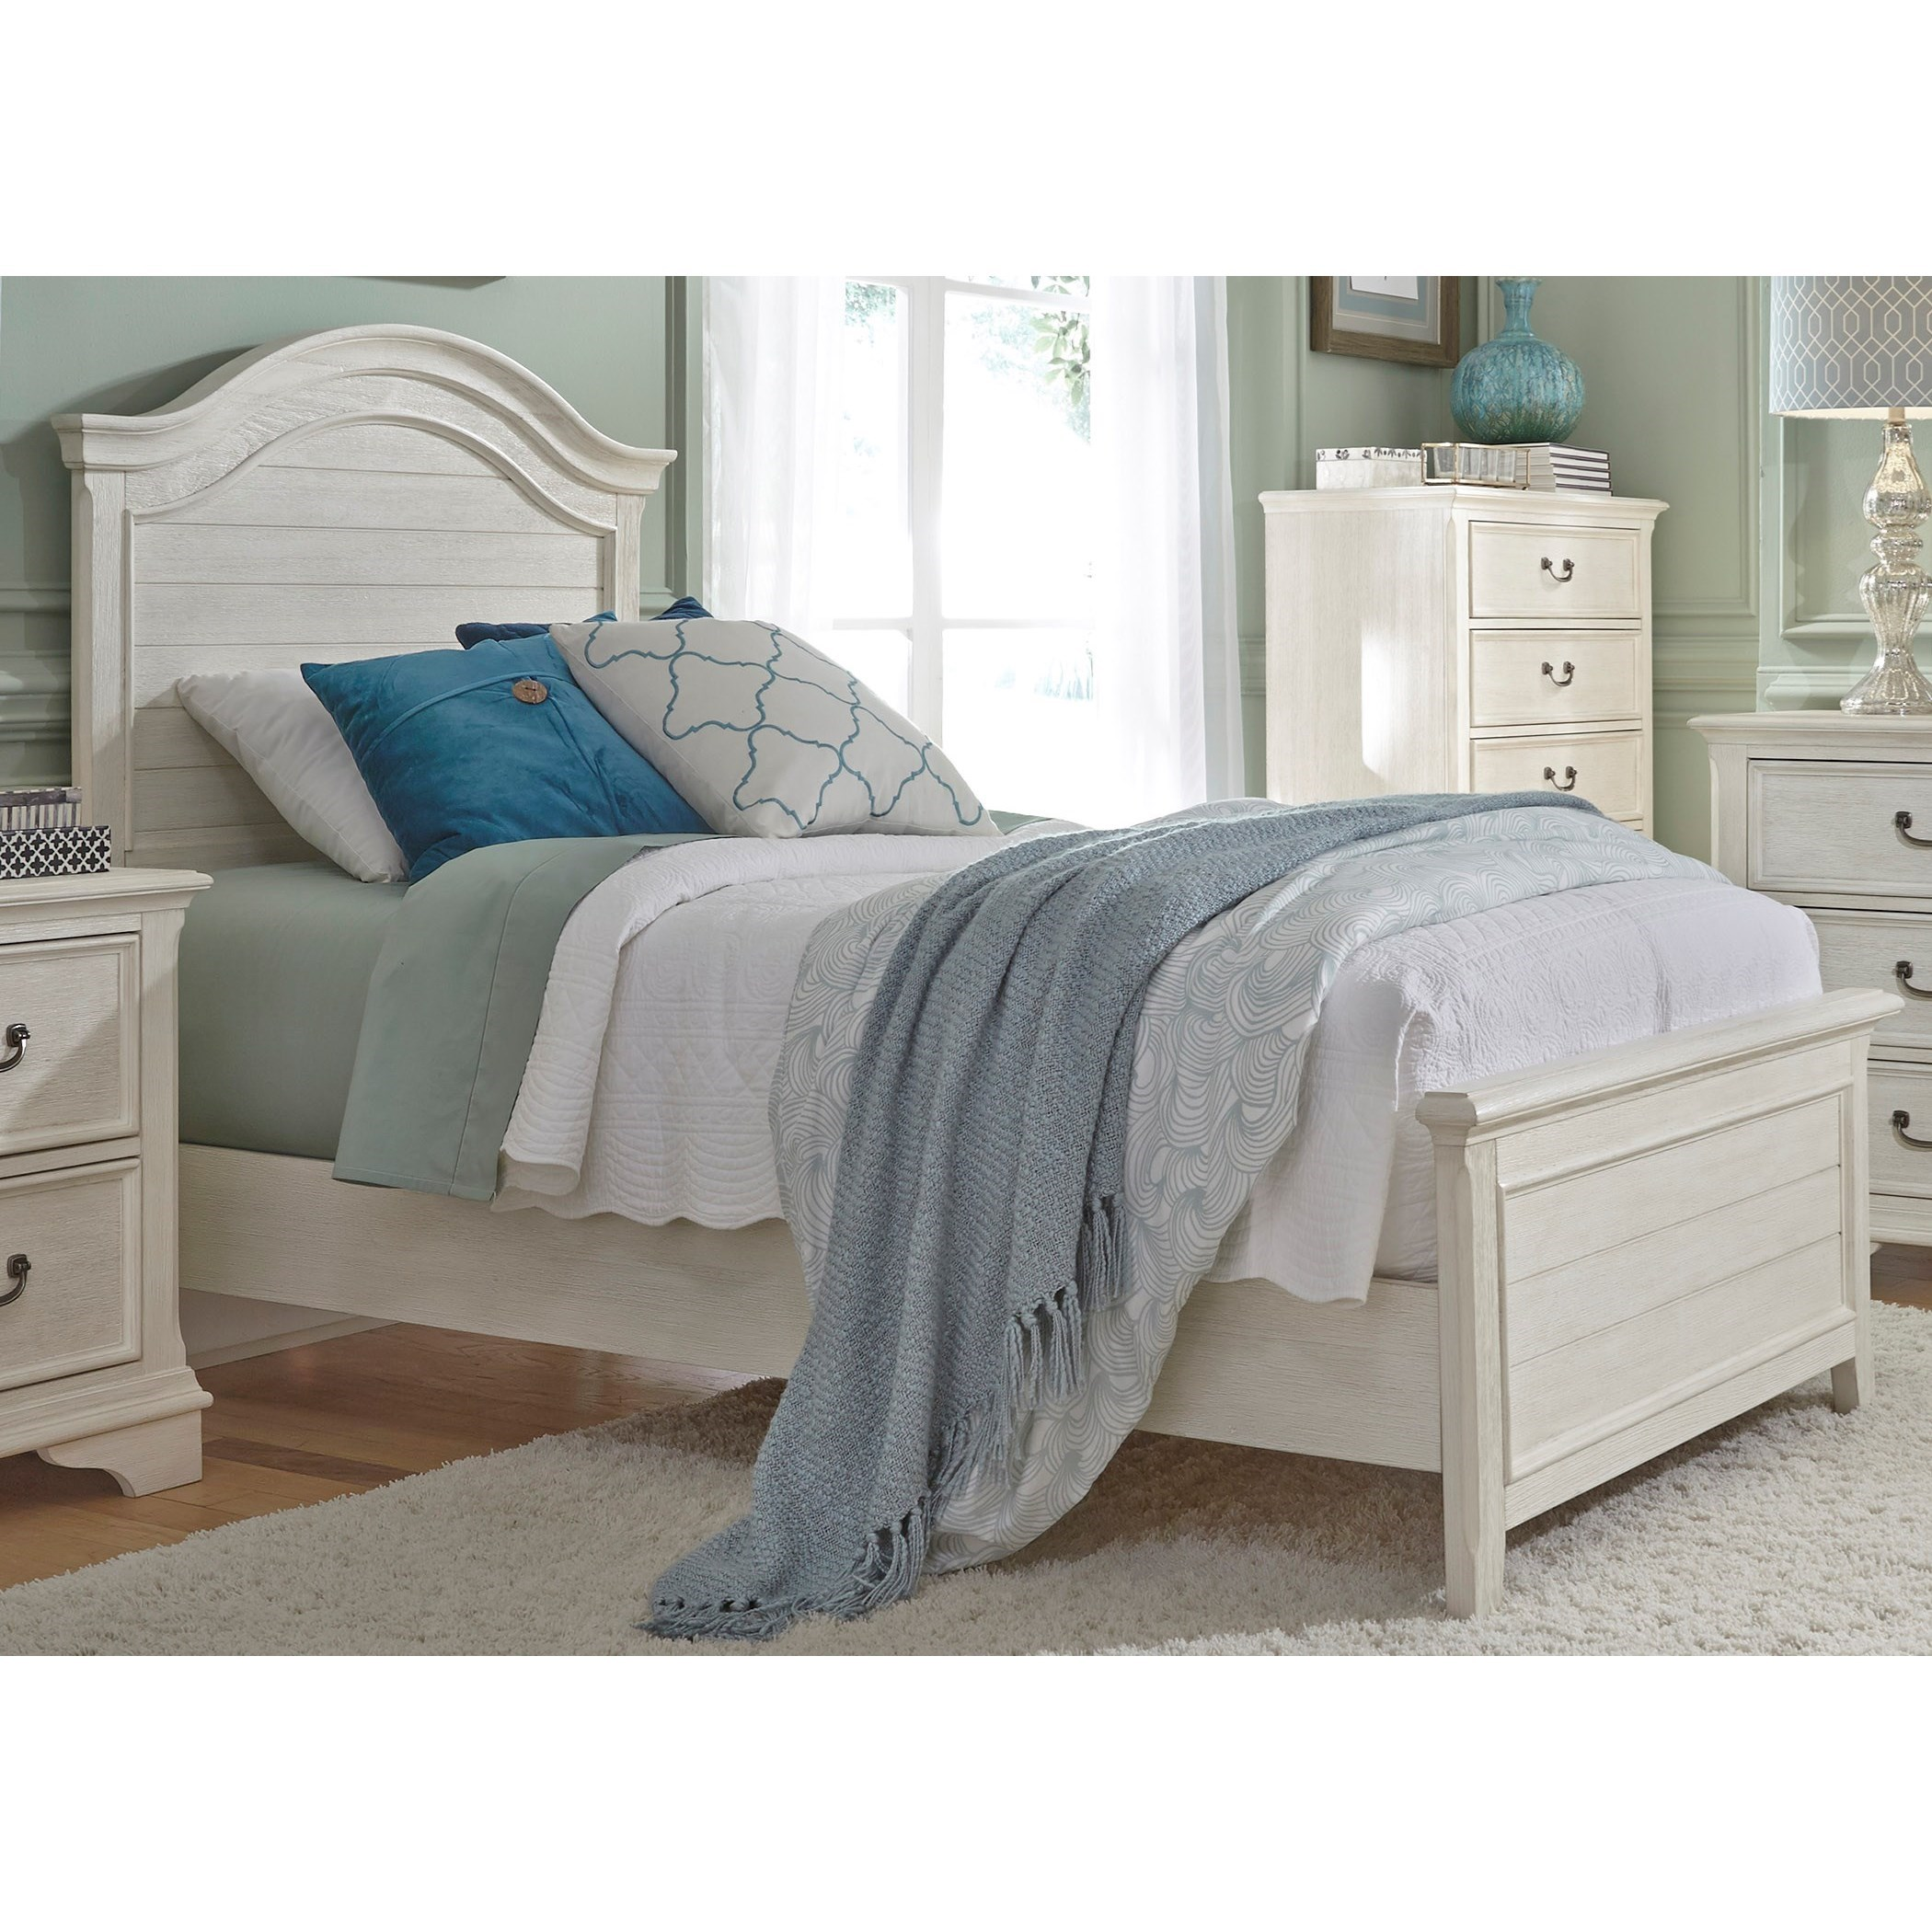 Bayside Bedroom Full Panel Bed  by Sarah Randolph Designs at Virginia Furniture Market